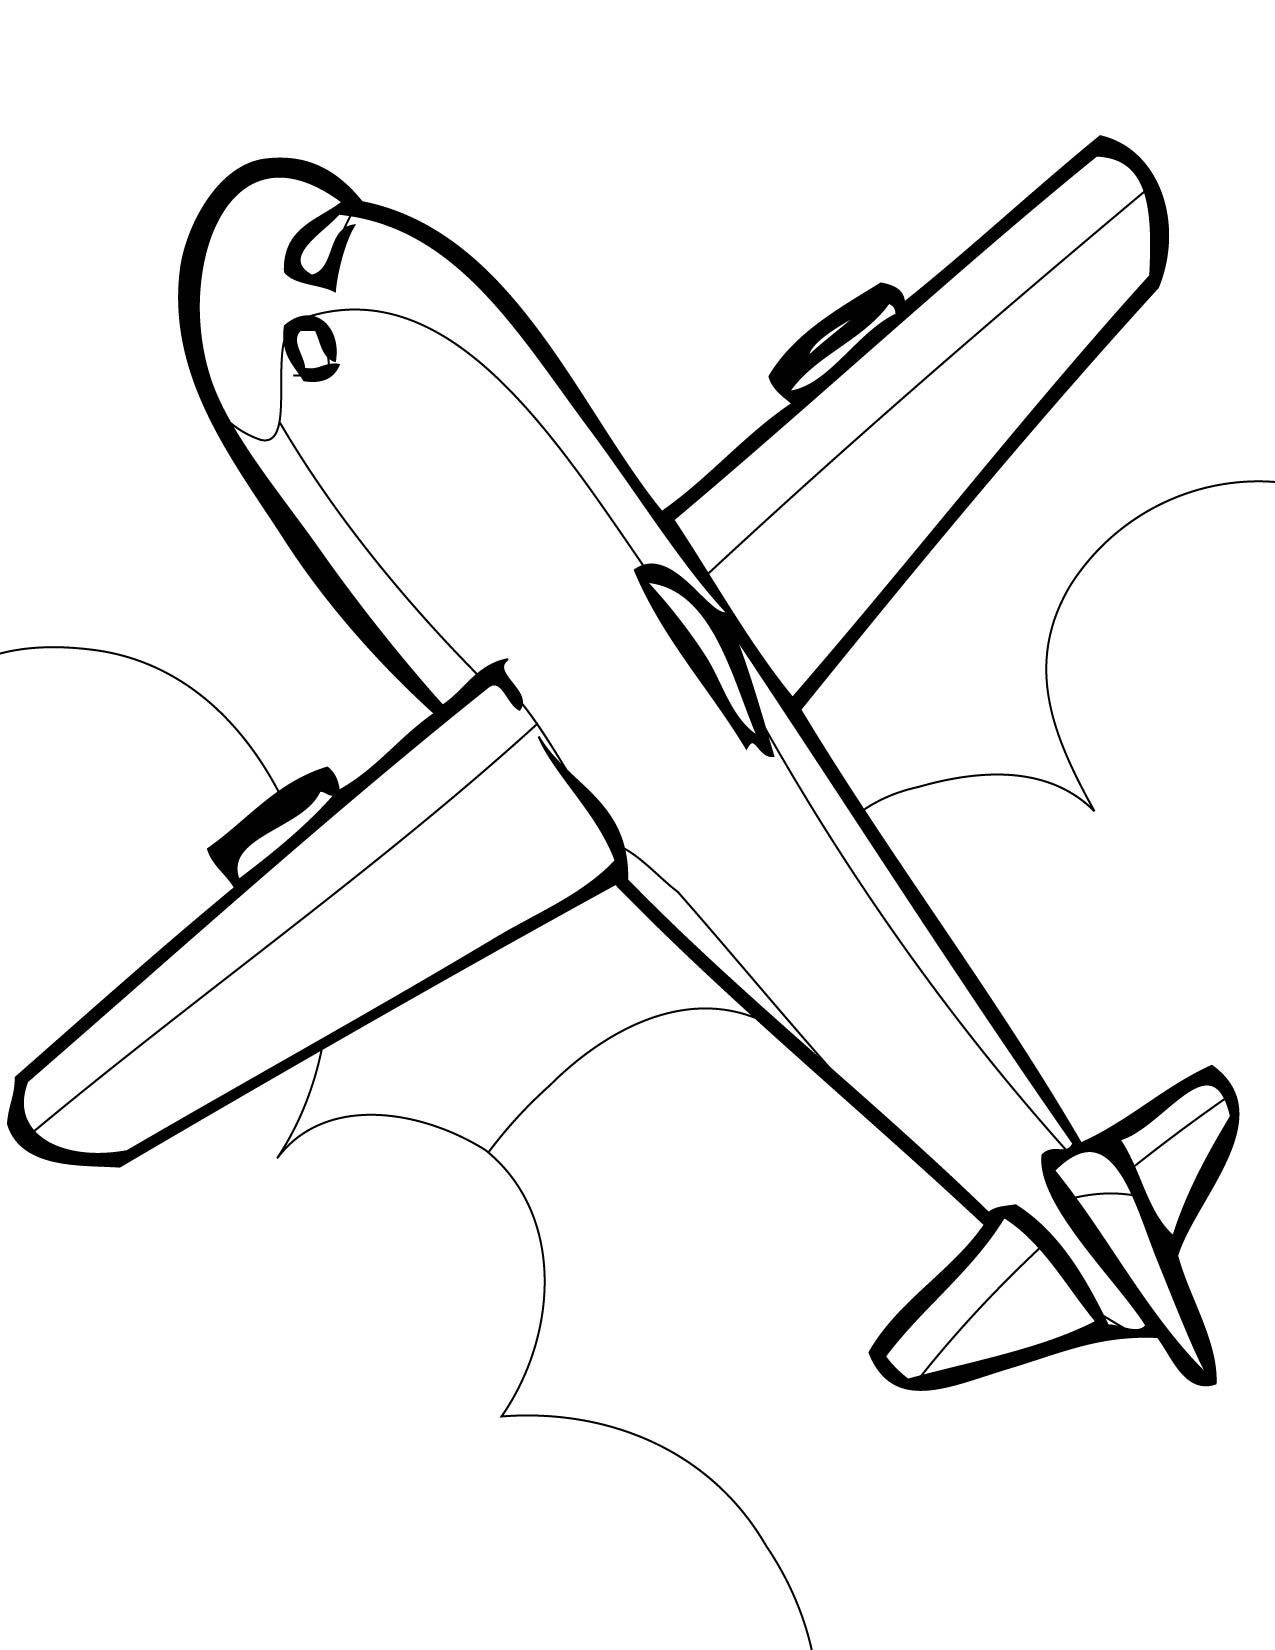 1275x1650 Free Printable Airplane Coloring Pages For Boys Kids Adults Online